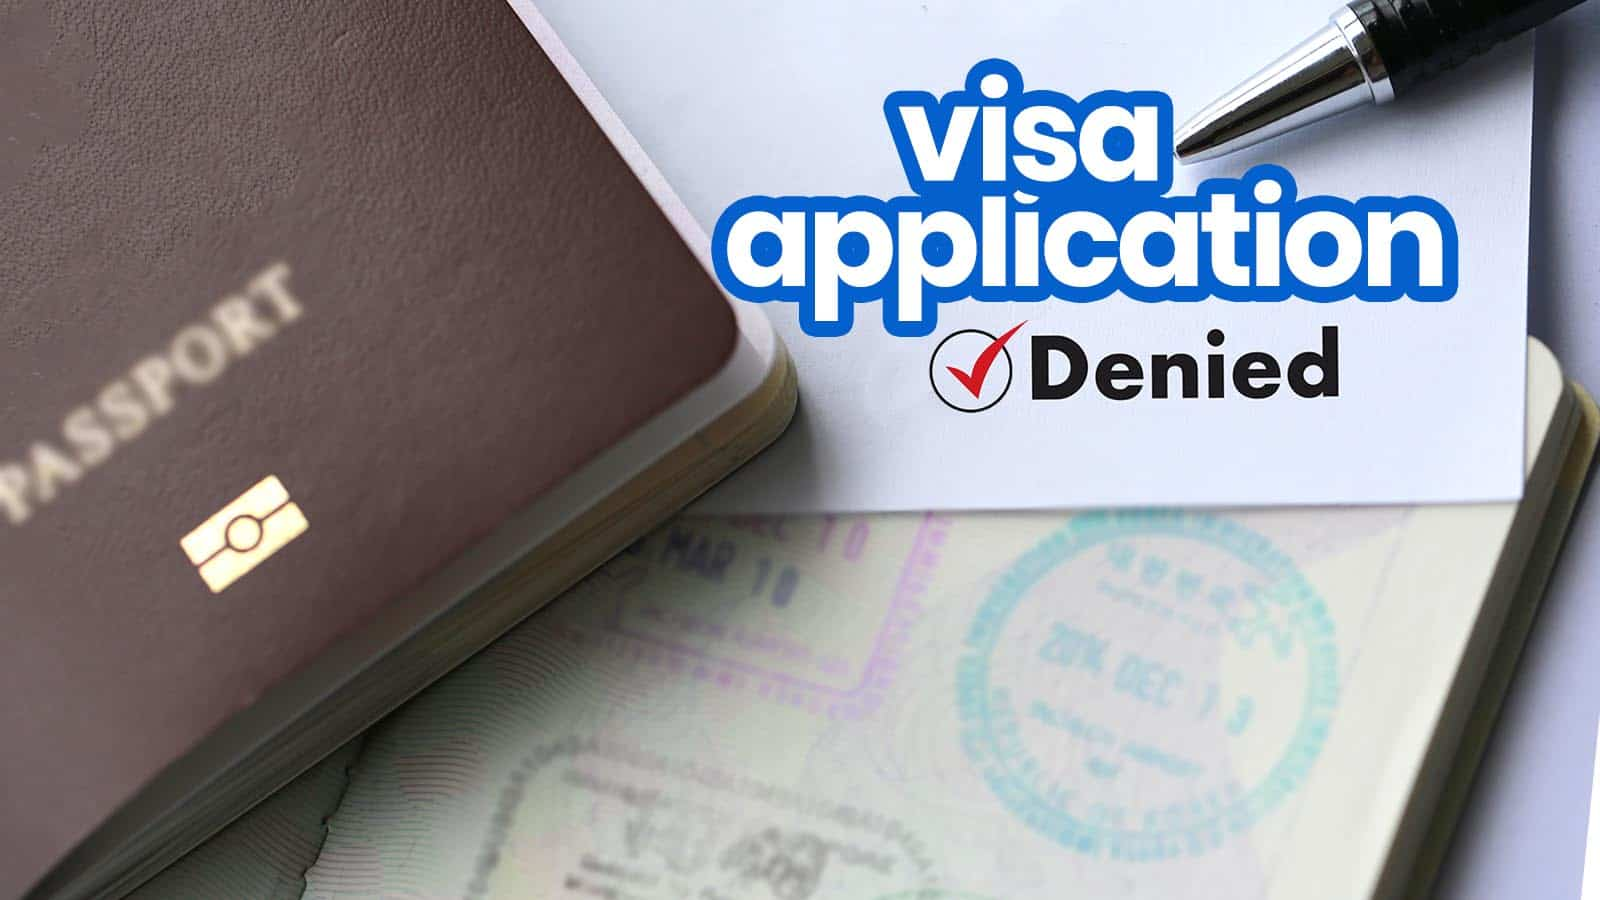 Online Travel Agent Cover Letter Visa Application Denied 10 Common Reasons And How To Avoid Them